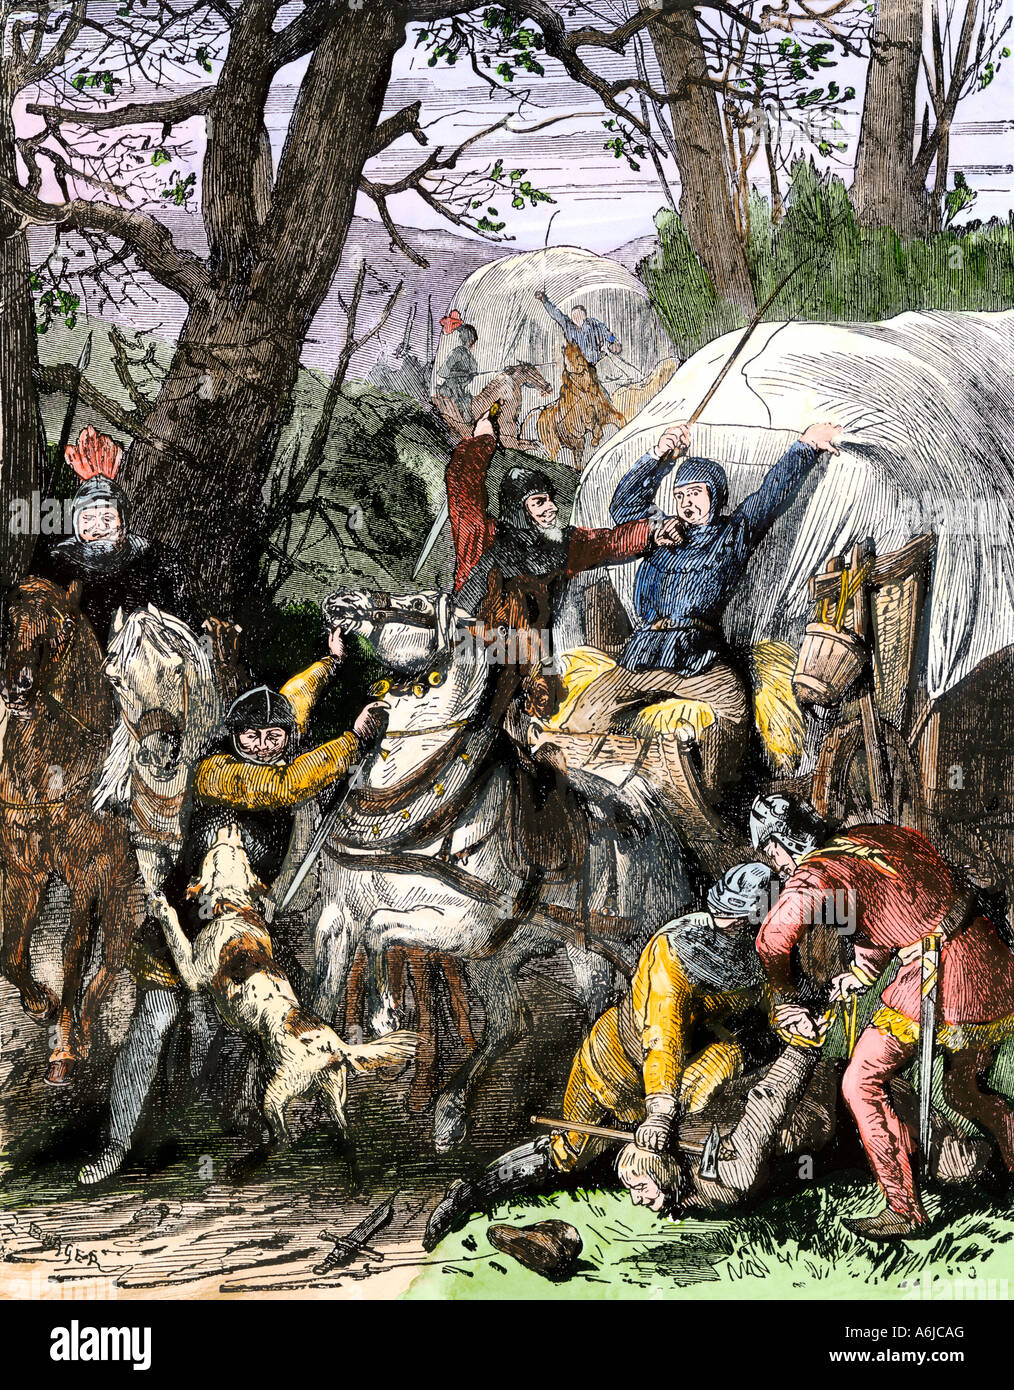 Norman barons waylaying travelers in England in the late Middle Ages. Hand-colored woodcut - Stock Image